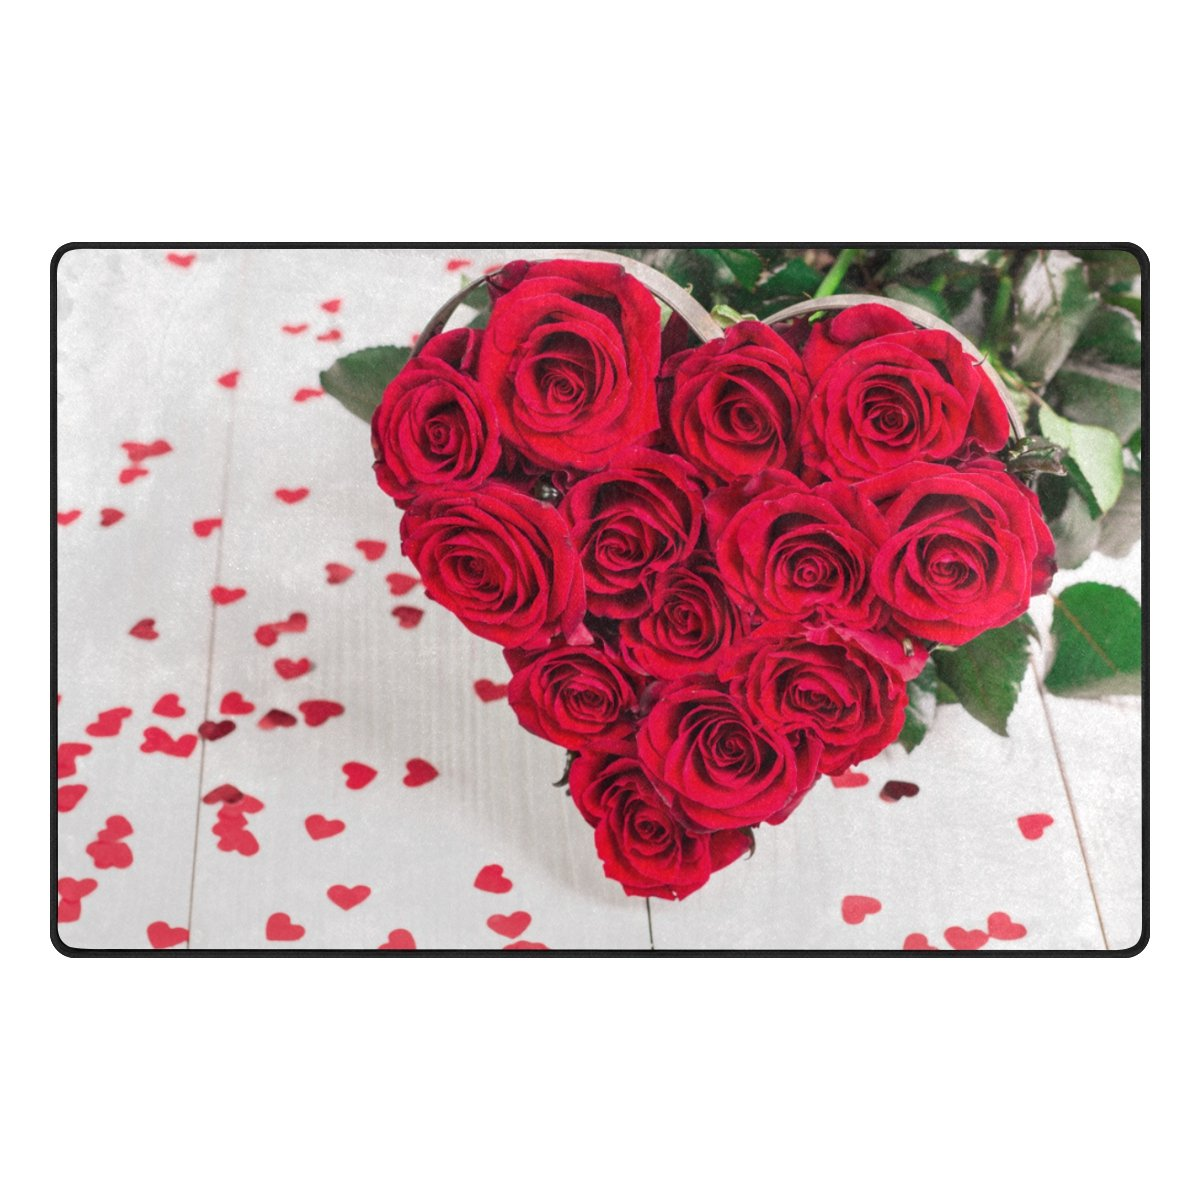 Vantaso Door Mats Non Slip Area Rugs Happy Valentine's Day Roses Red Heart Shape On Wood Play Mats Carpets for Kids Playing Room Living Room Soft Foam Kitchen Rugs 60 x 39 inch